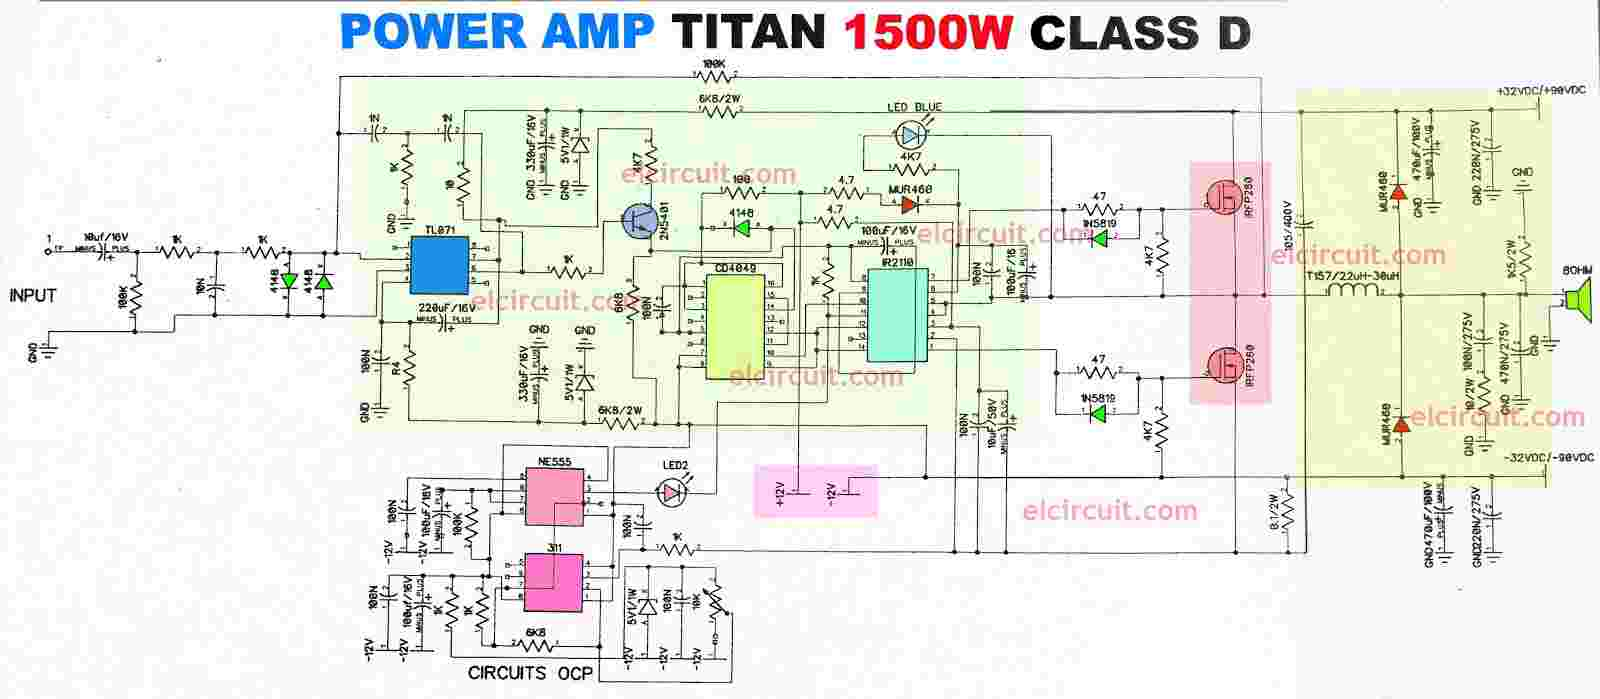 hight resolution of high power amplifier circuit diagram class d titan